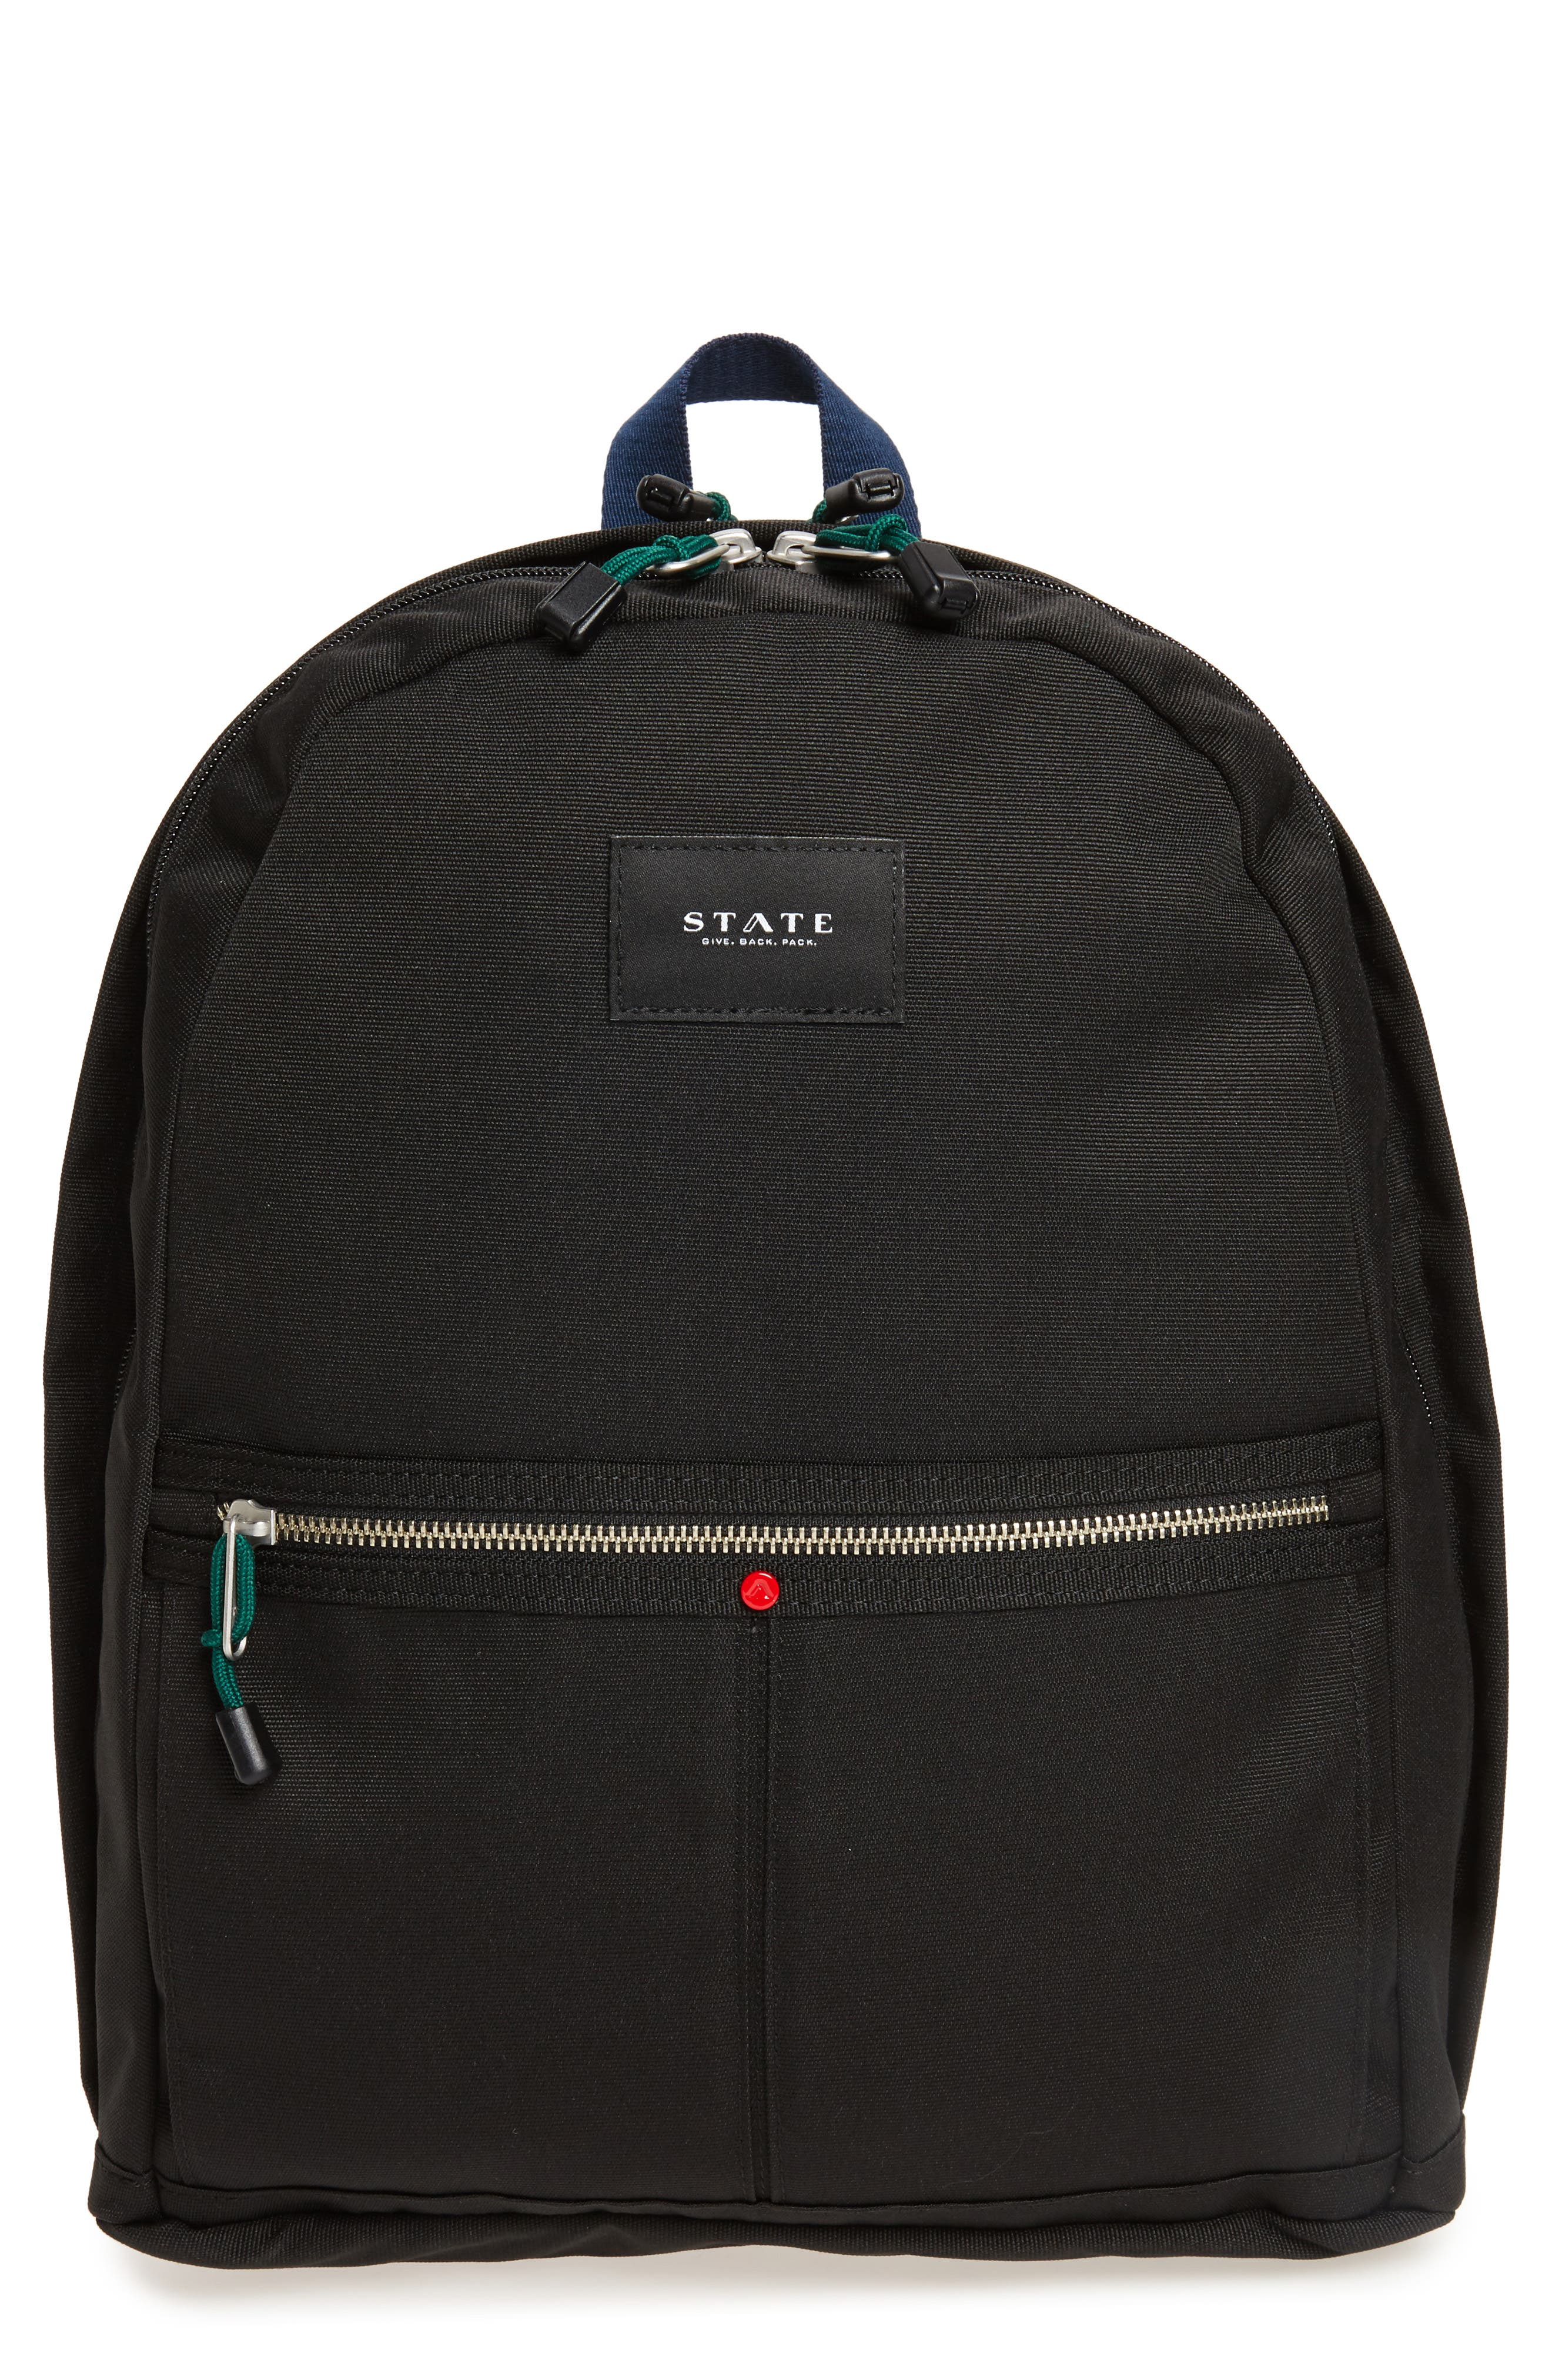 Main Image - STATE Bags Kent Backpack